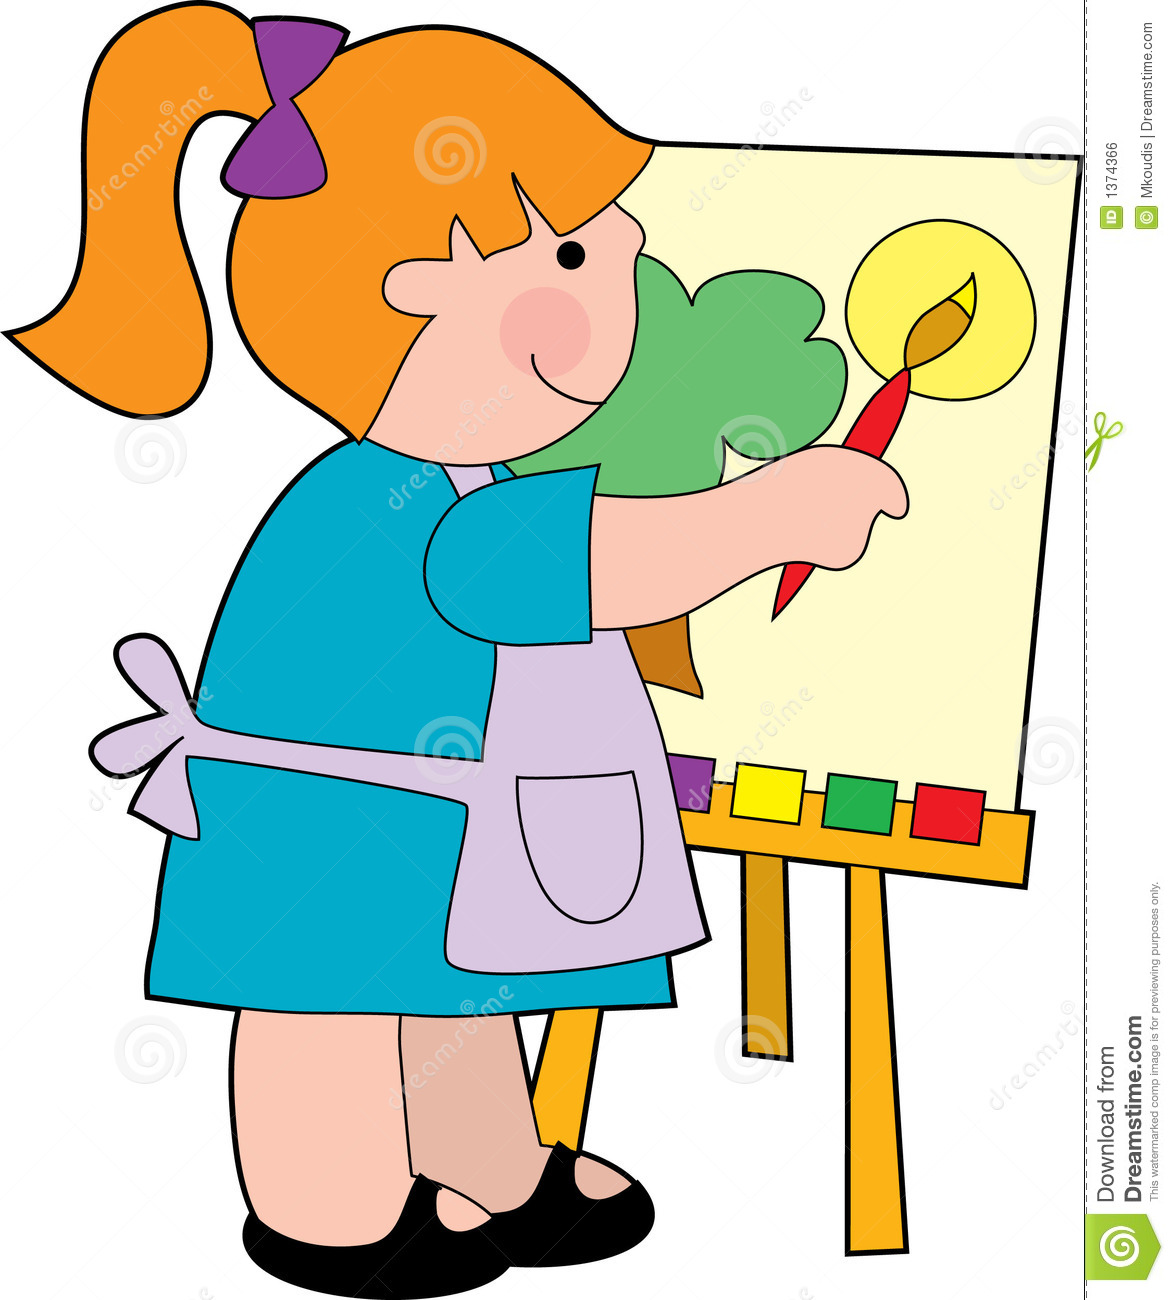 Paint clipart for kids